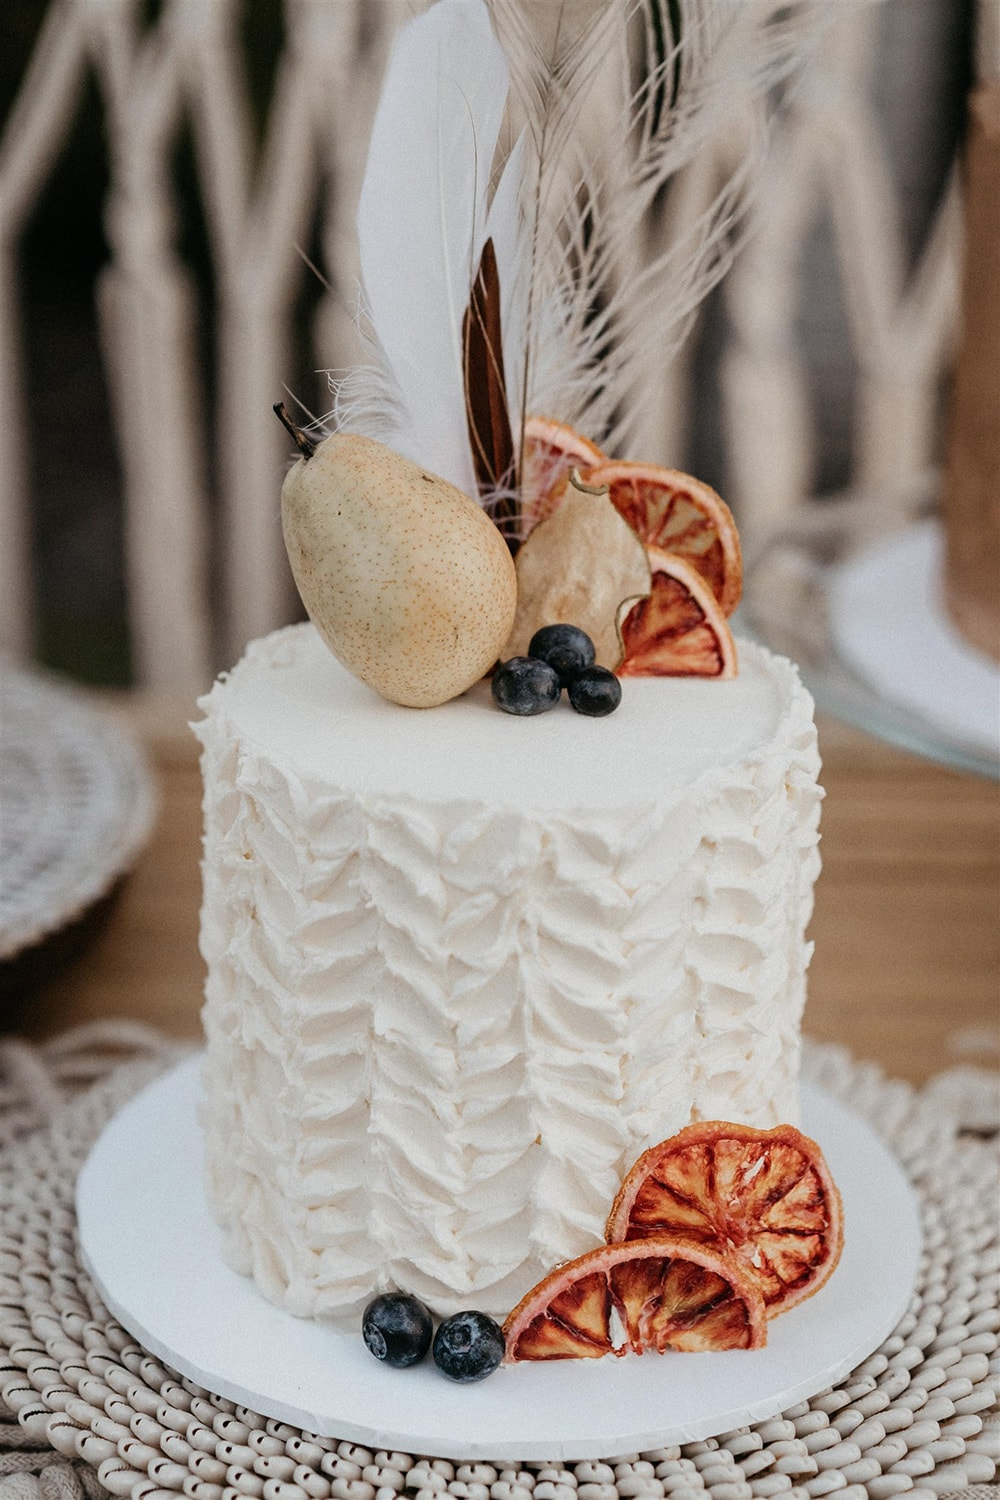 Outdoor Festival Bohemian Wedding Inspiration   A second single tier white buttercream wedding cake features bold chevron texture, dried orange slices, whole pear, blueberries and assorted feathers.   Photography: Shae Estella Photo